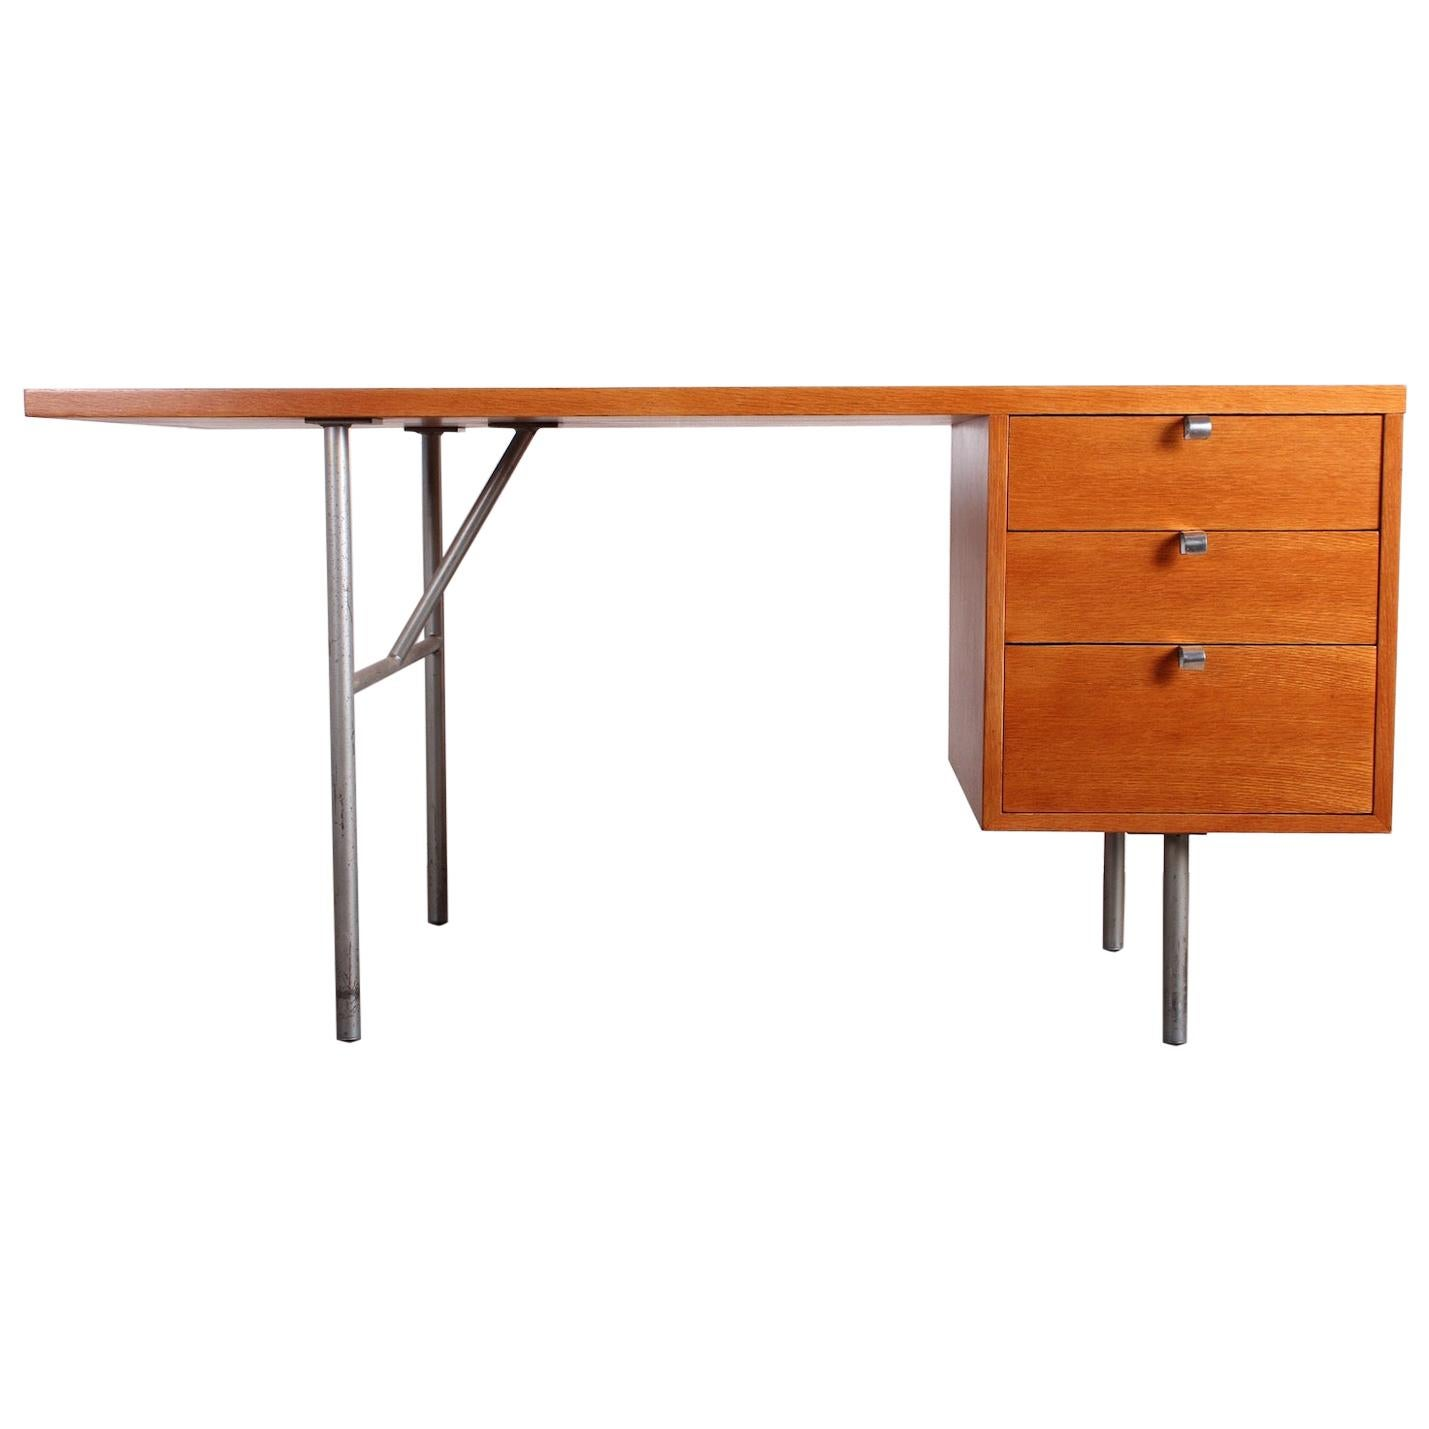 Desk by George Nelson for Herman Miller